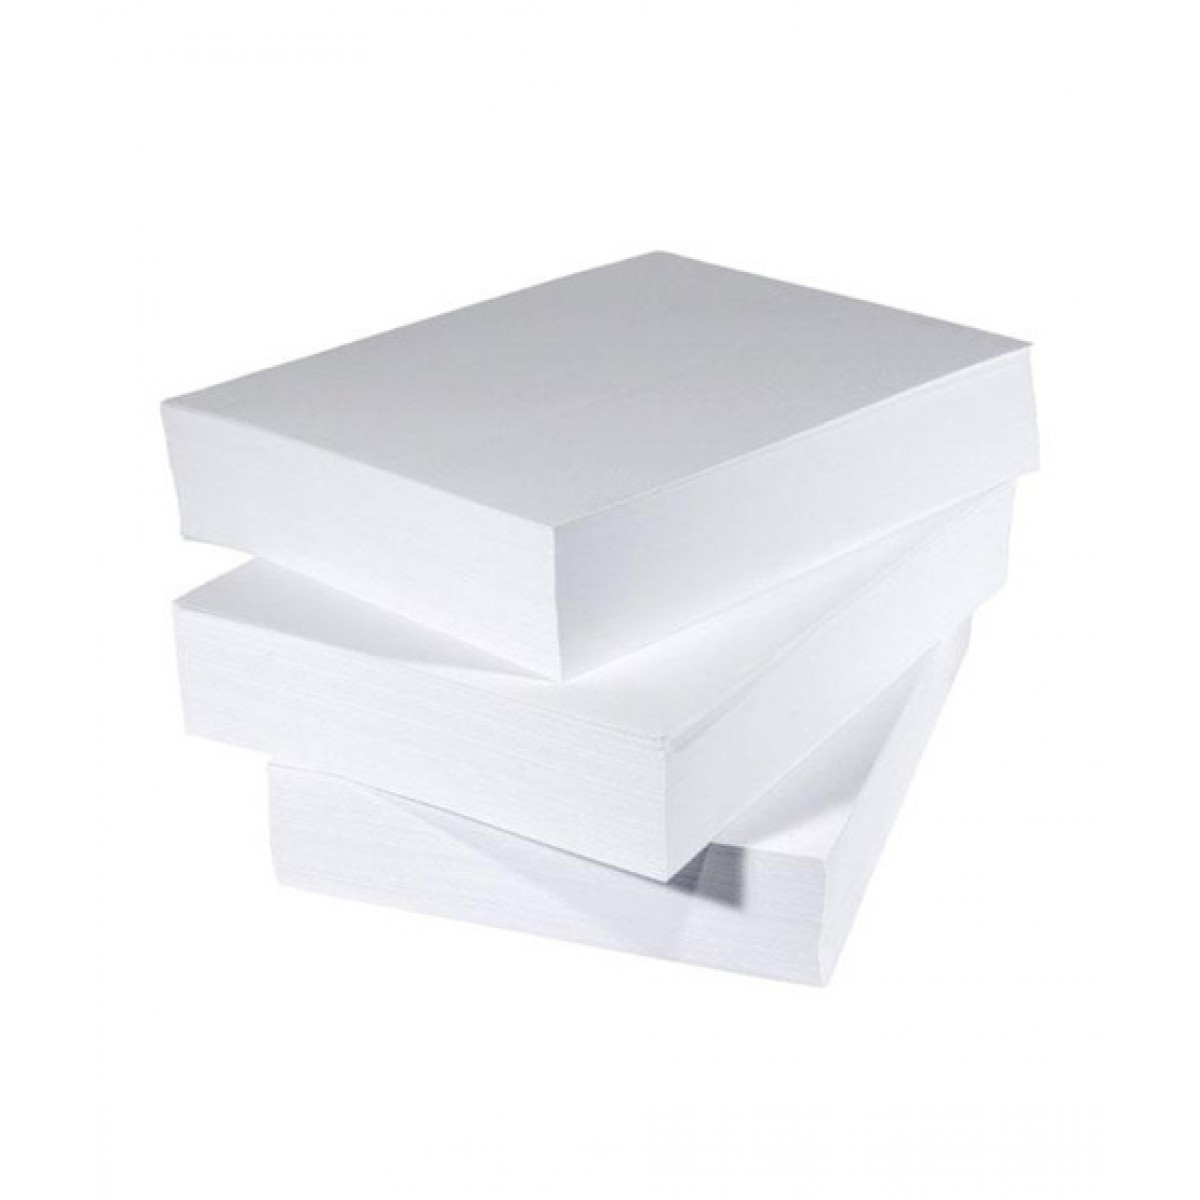 BazingaPK Paper Pack For Printing Photocopy 70gm - 500 Sheets